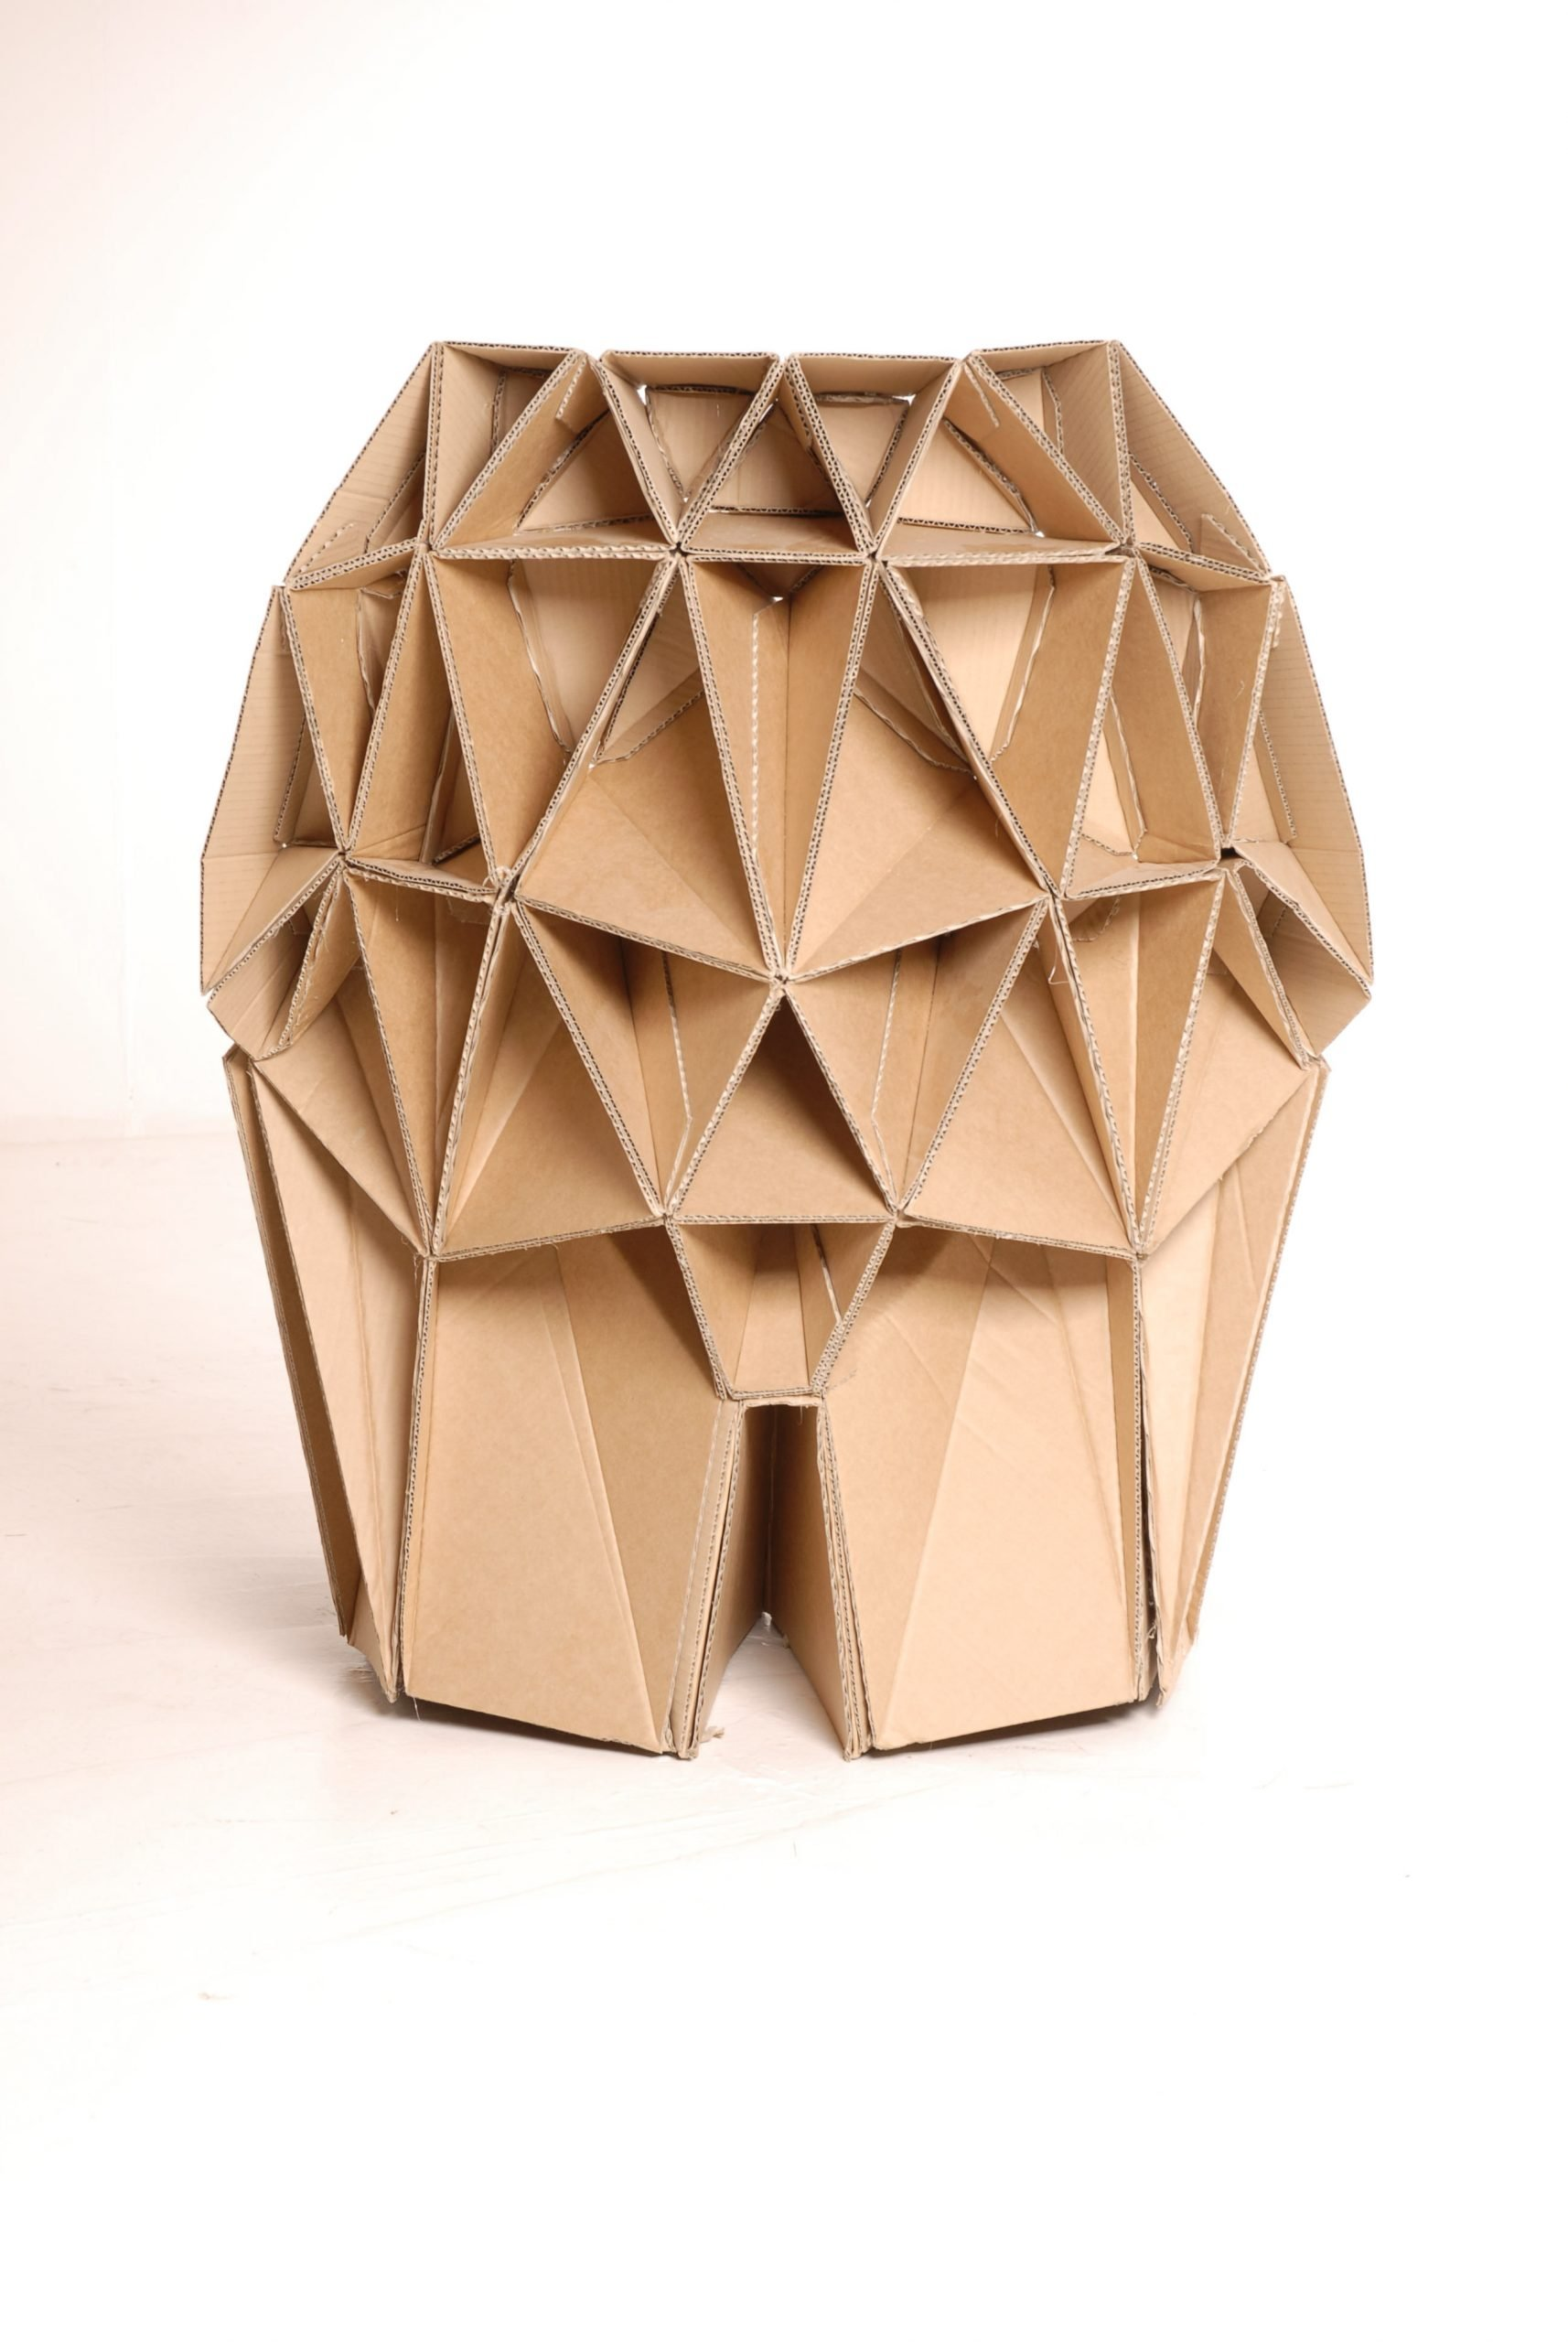 Back of cardboard chair made from thousands of creative triangular components by design studio lazerian